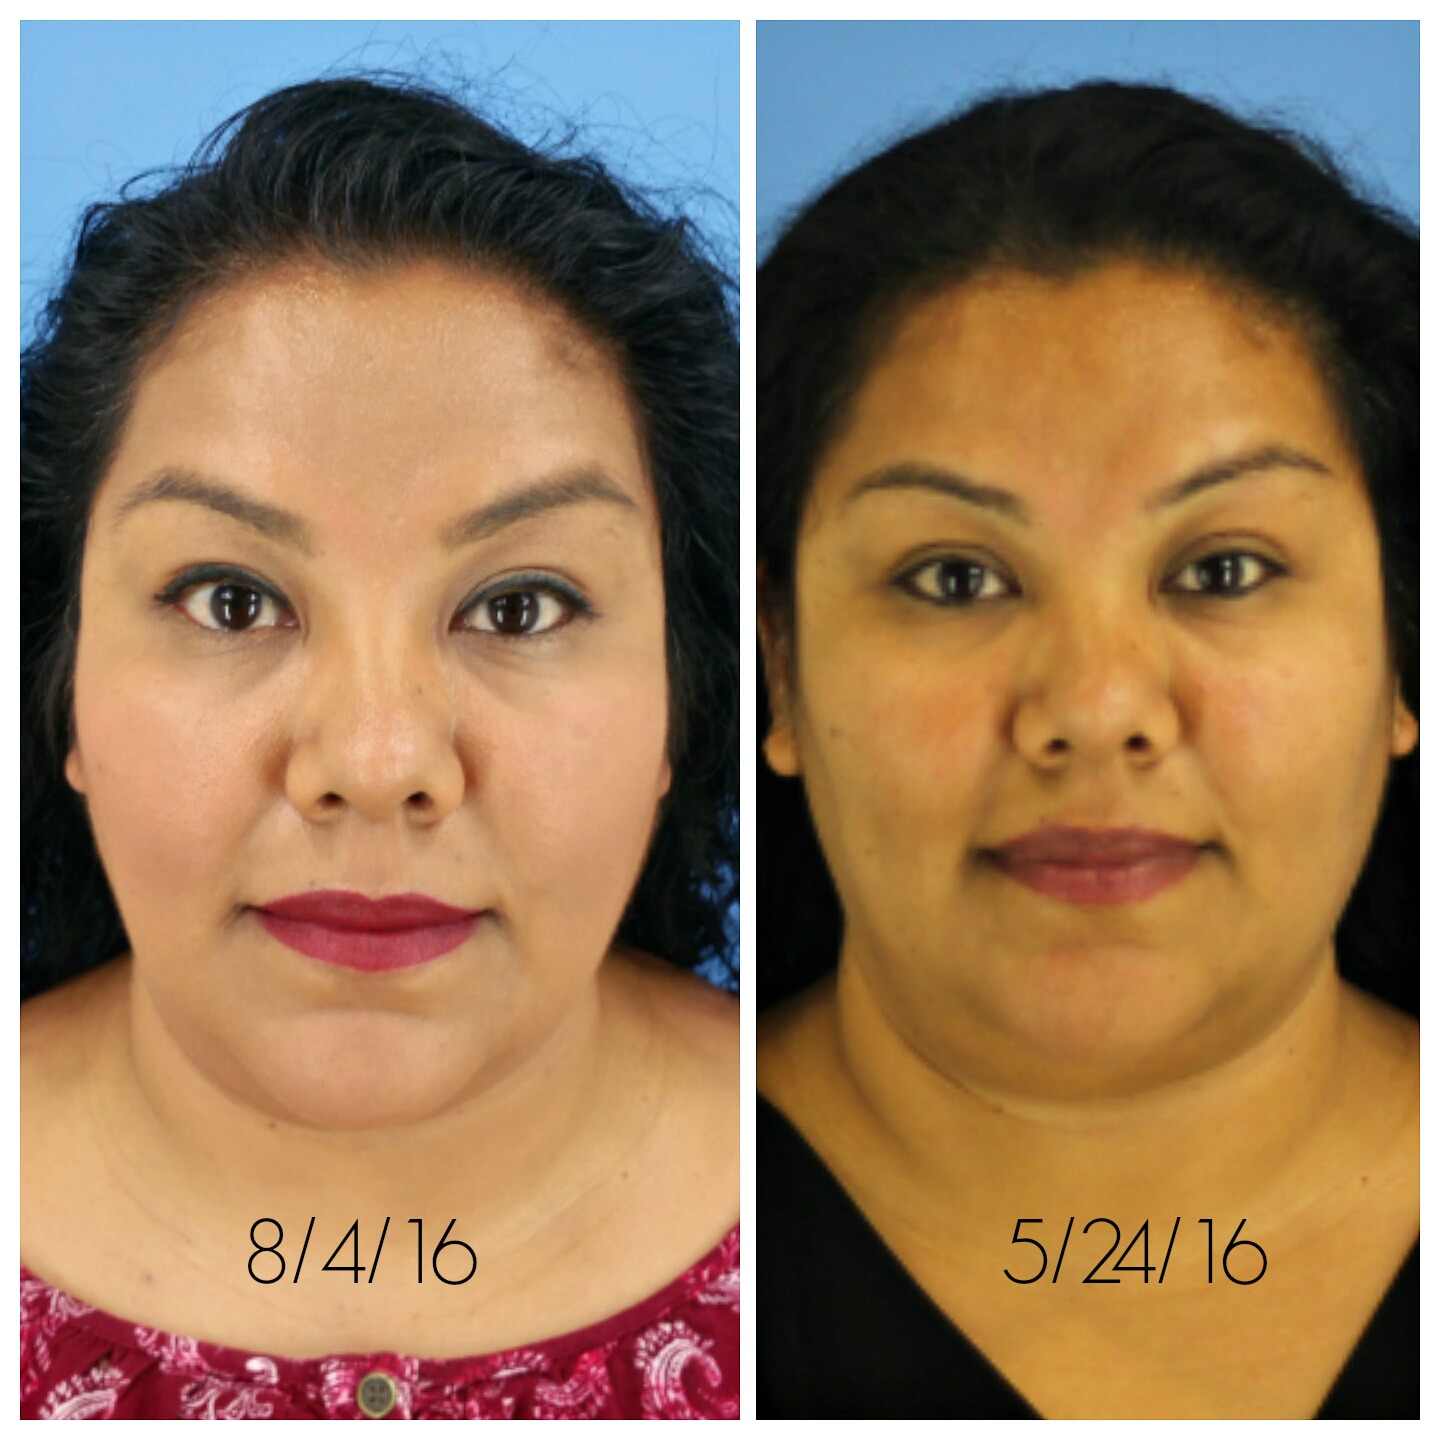 2nd-kybella-treatment-update-with-pictures-cosmeticaremoms